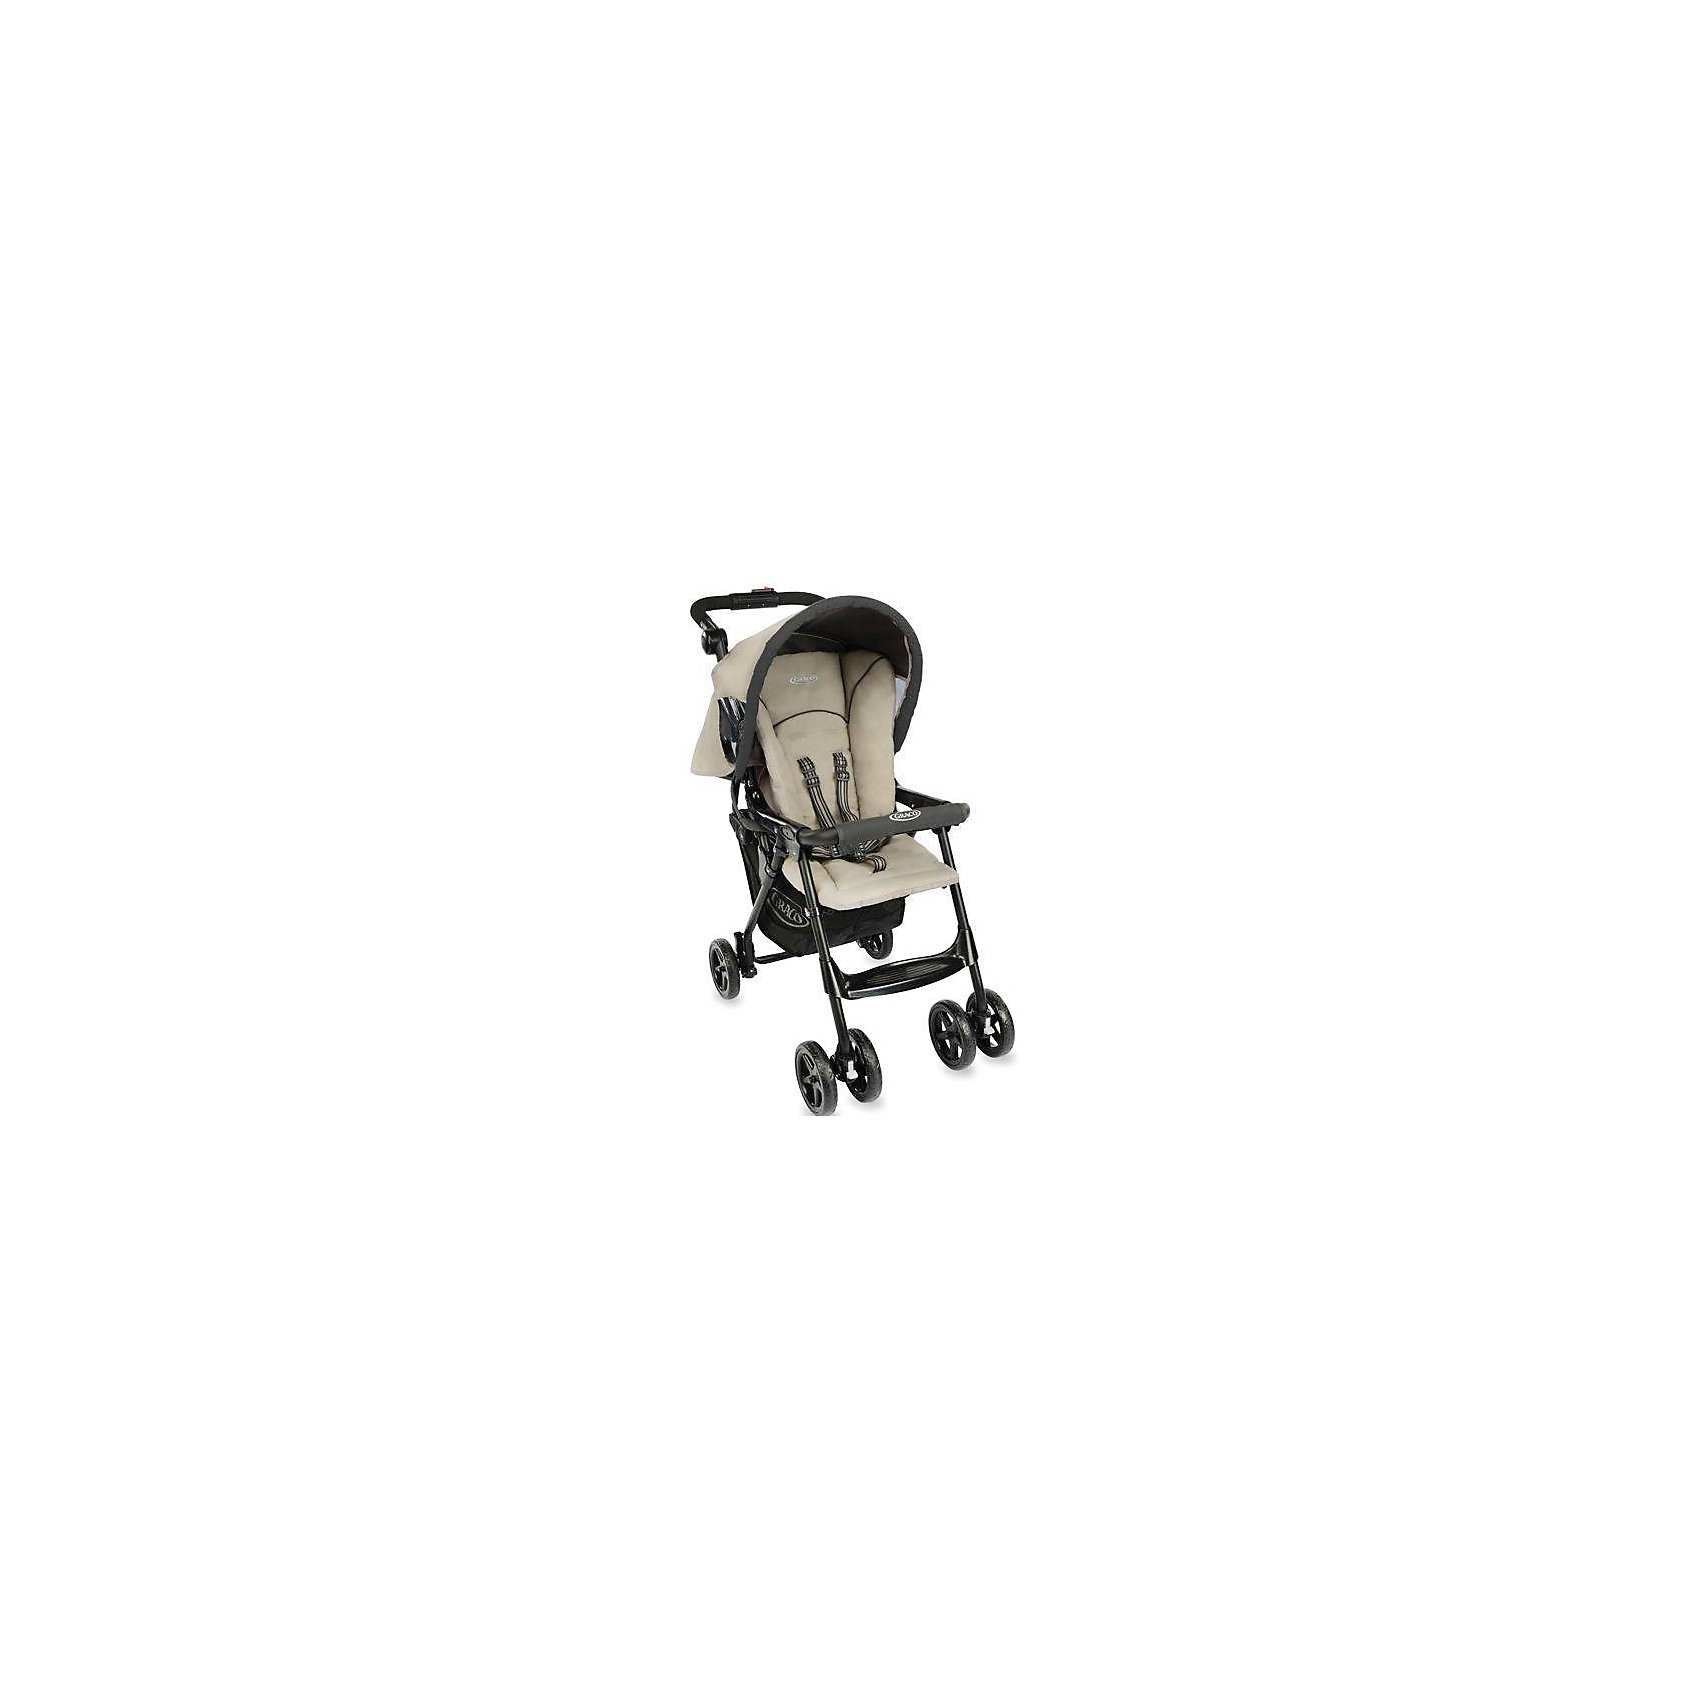 Graco Прогулочная коляска Citysport (PEBBLE), Graco коляска graco graco прогулочная коляска mirage w parent tray and boot jaffa stripe